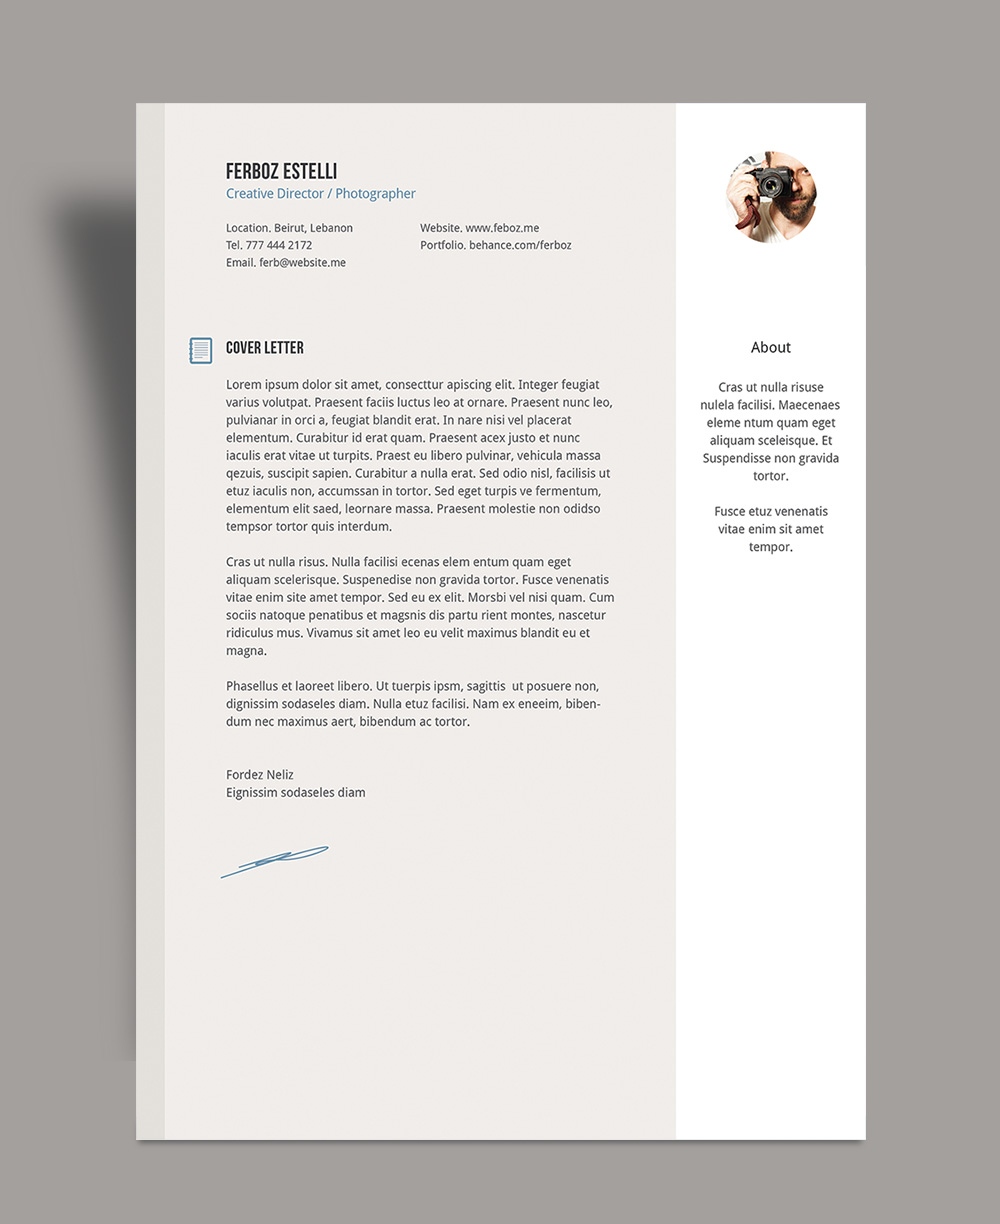 Free Professional Resume (CV) Template With Cover Letter & Portfolio For Graphic Design & Photographer Ai File-6